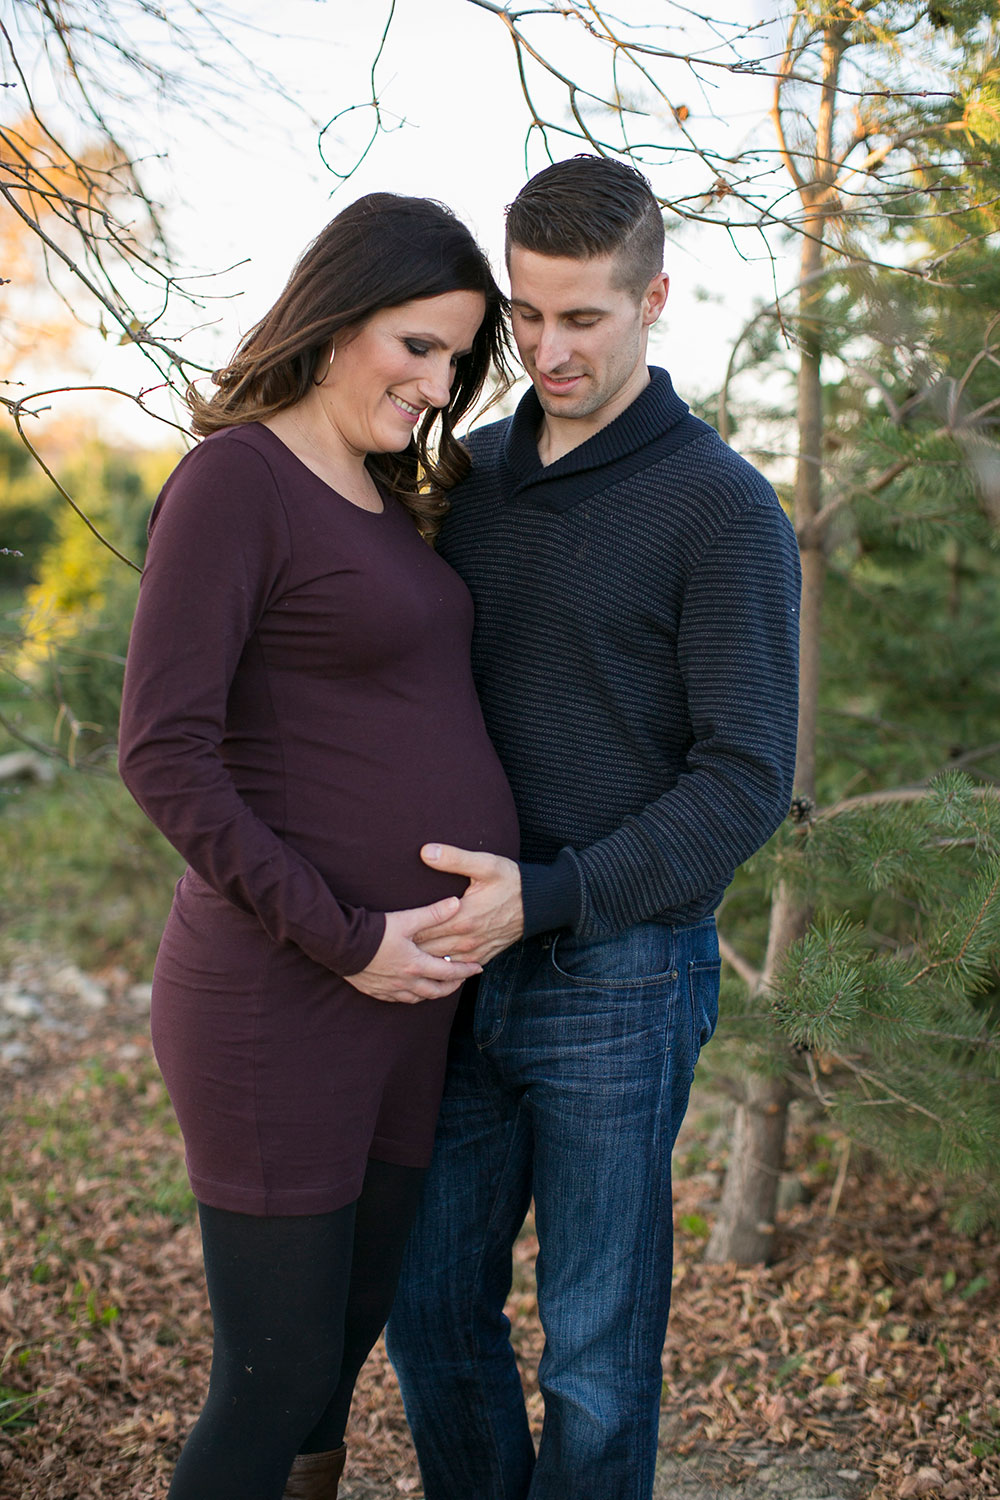 Winter-maternity-session-niagara-maternity-photographer-tree-farm-photos-photo-by-philosophy-studios-0023.jpg